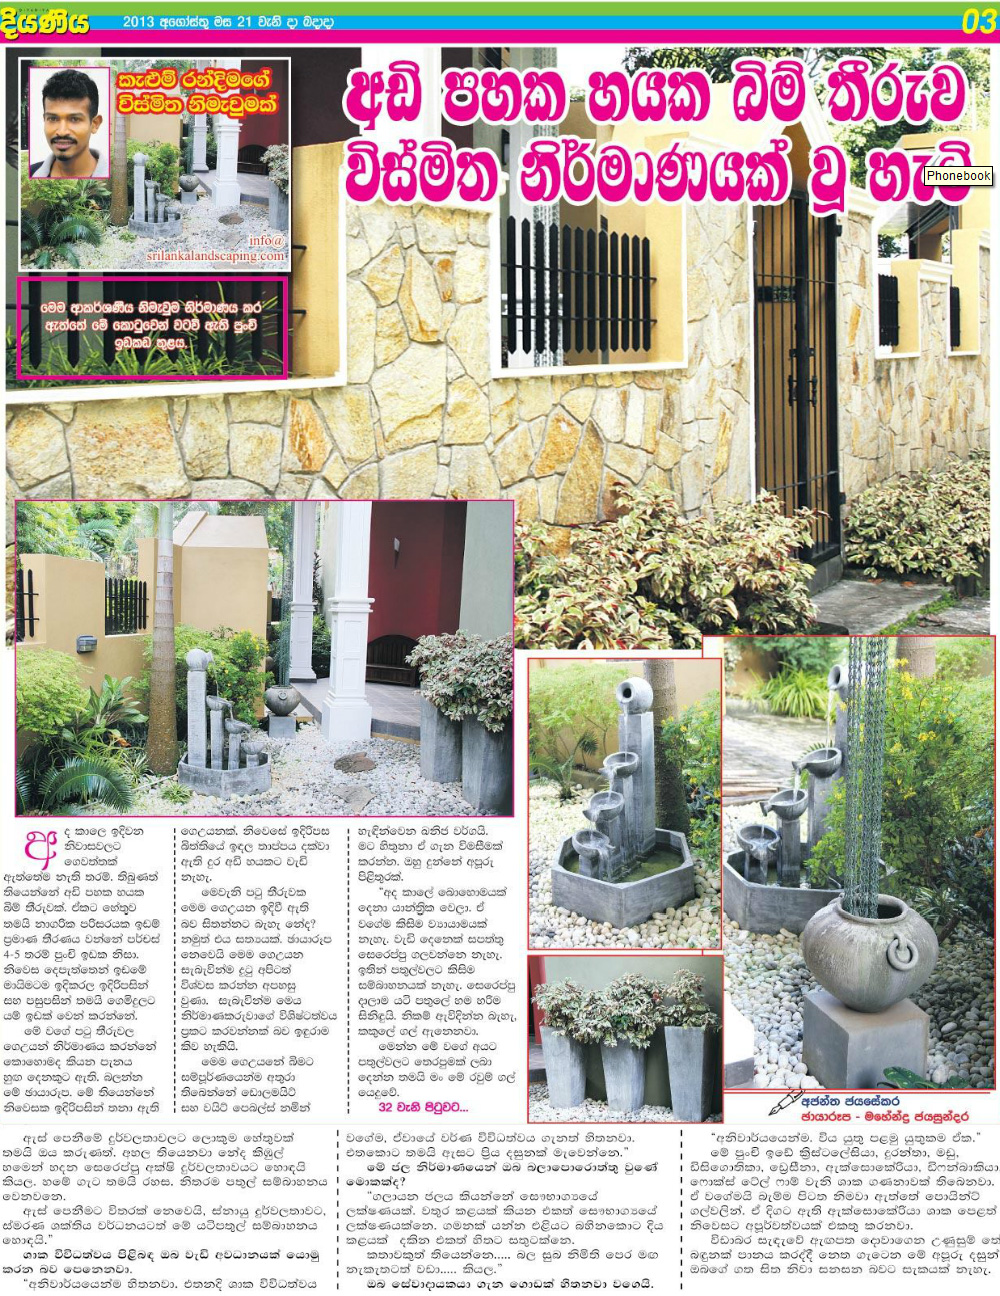 Diyaniya - NEWS PAPER - 14 Aug 2013